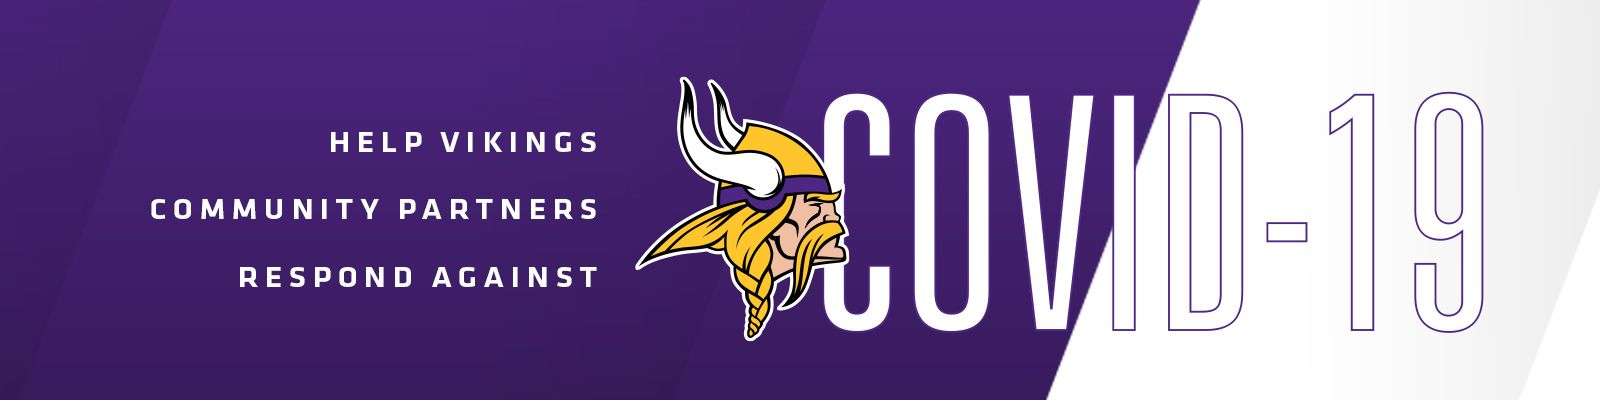 How to Help Vikings Community Partners Respond Against COVID-19